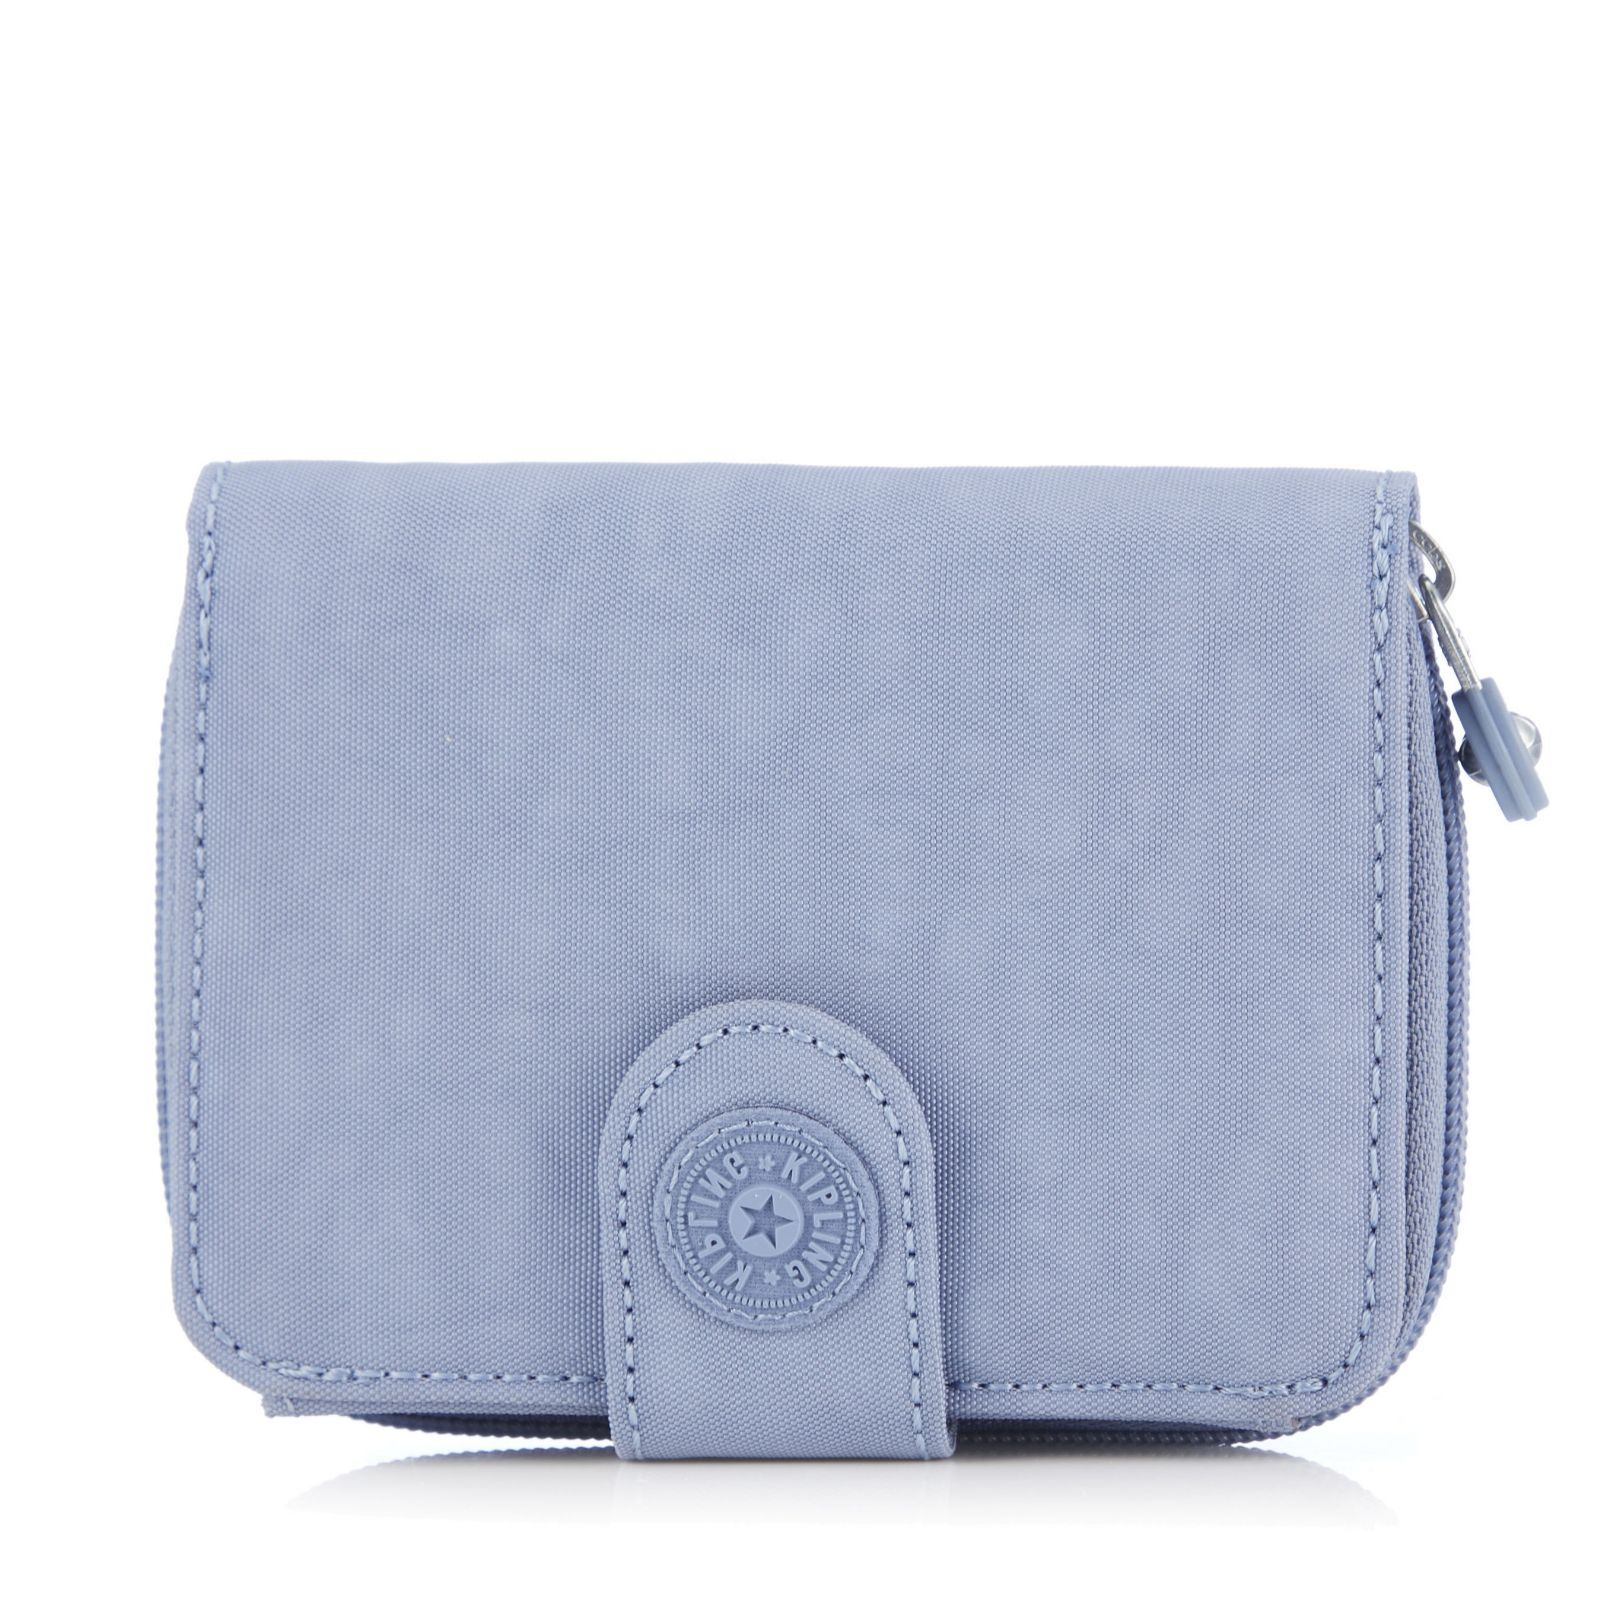 80ddf3fcf35 Kipling New Money Double Compartment Purse - Page 1 - QVC UK